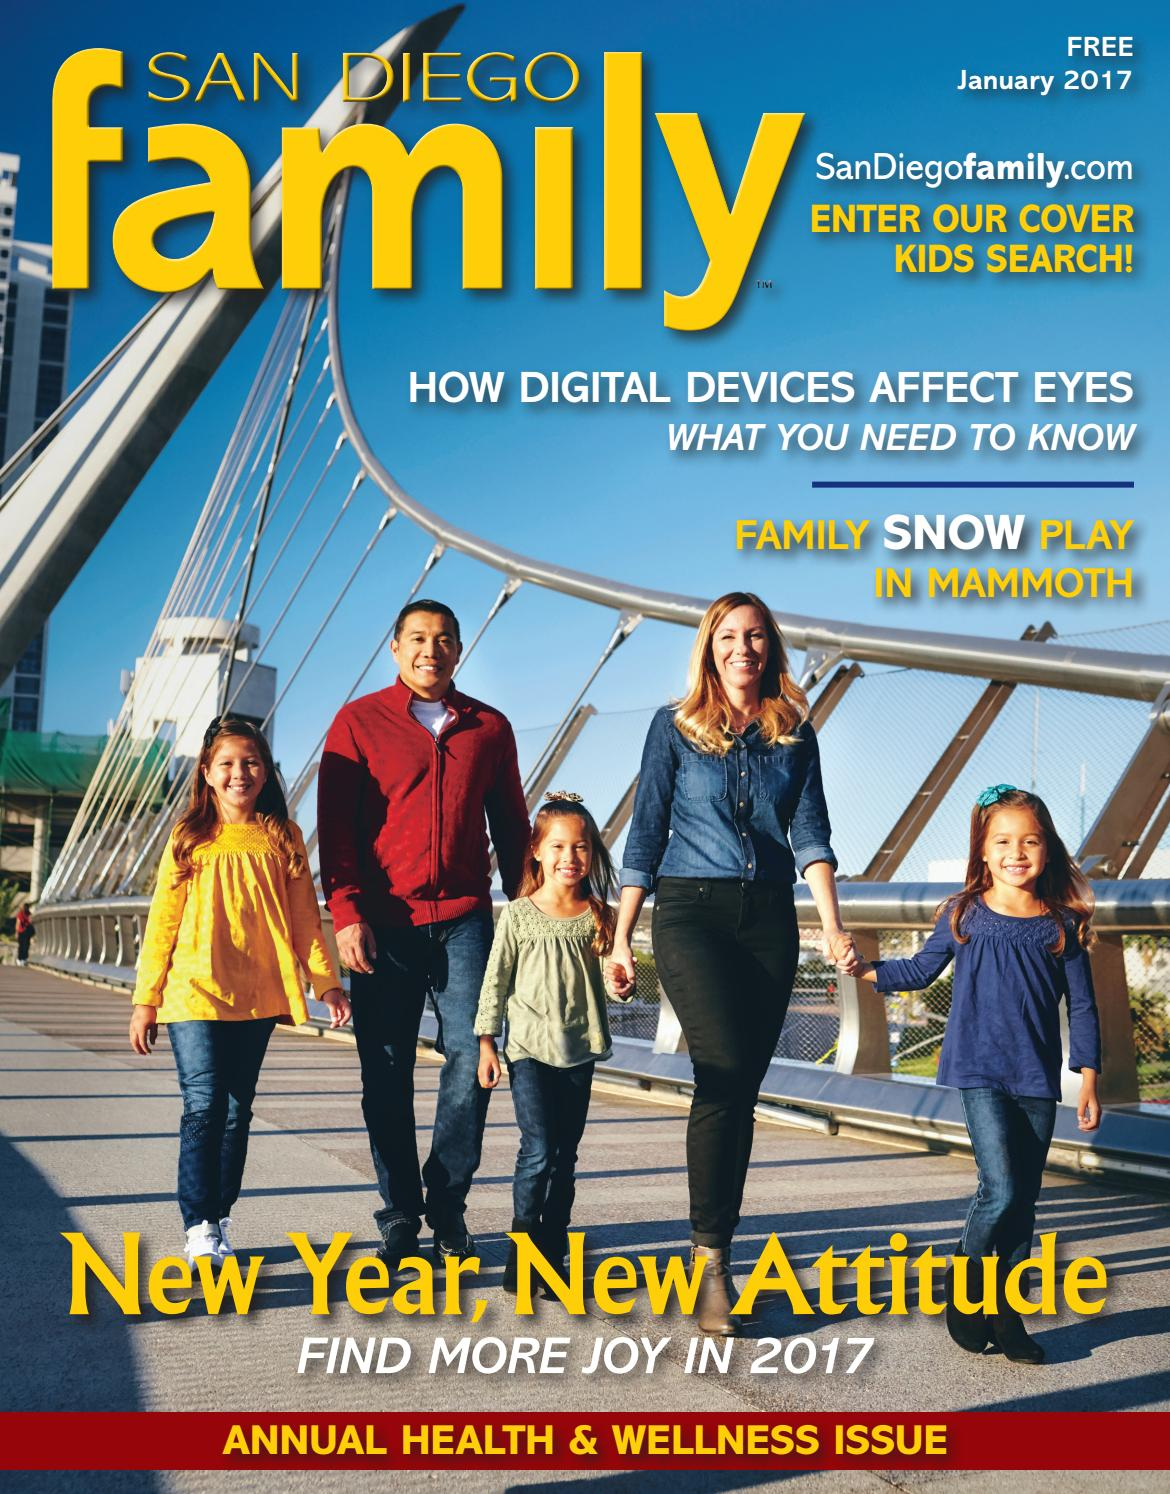 c48617838 San Diego Family Magazine - January 2017 by San Diego Family ...